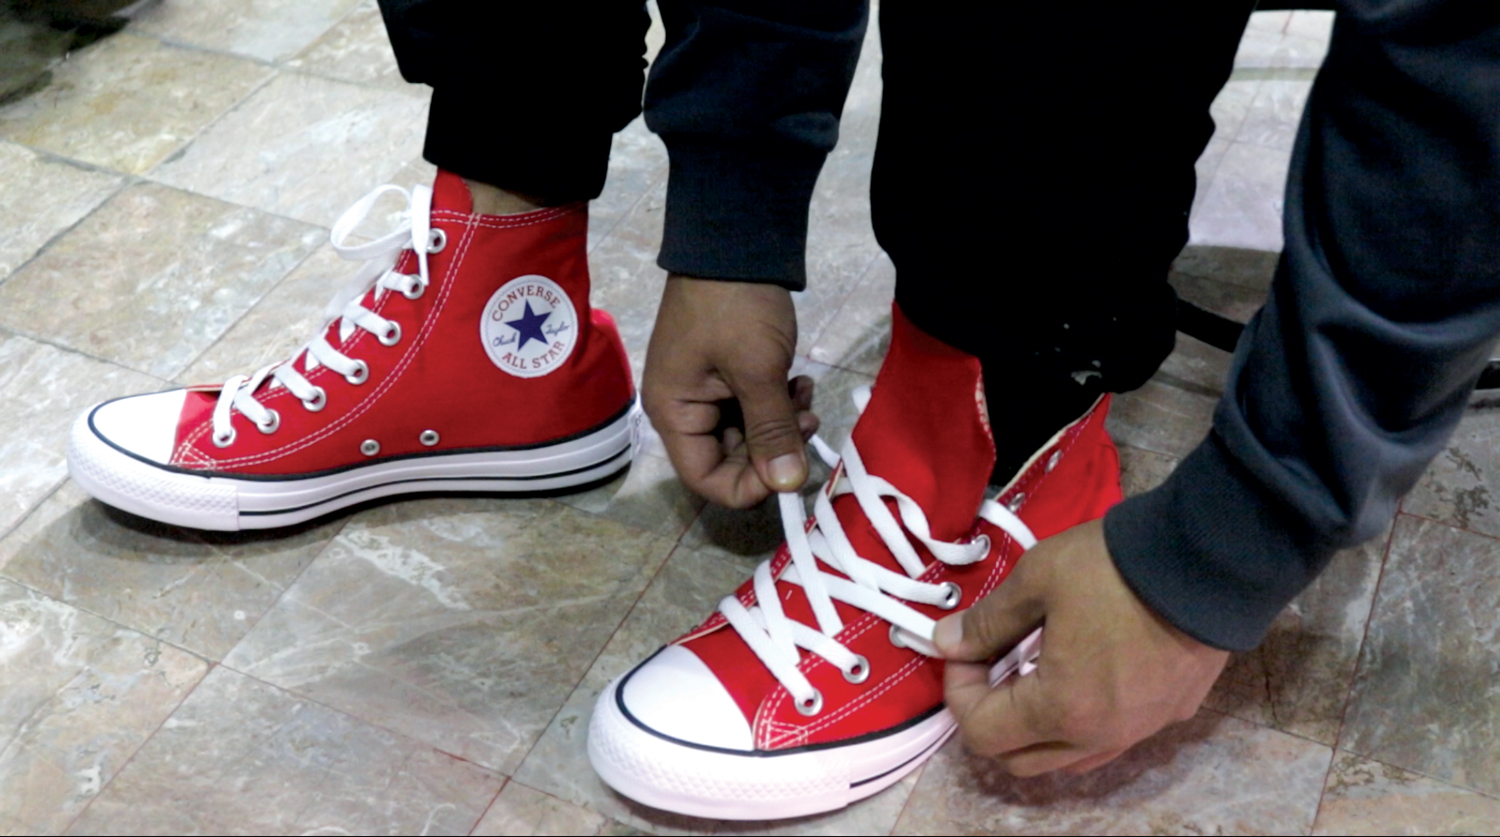 The enduring popularity of Converse shoes